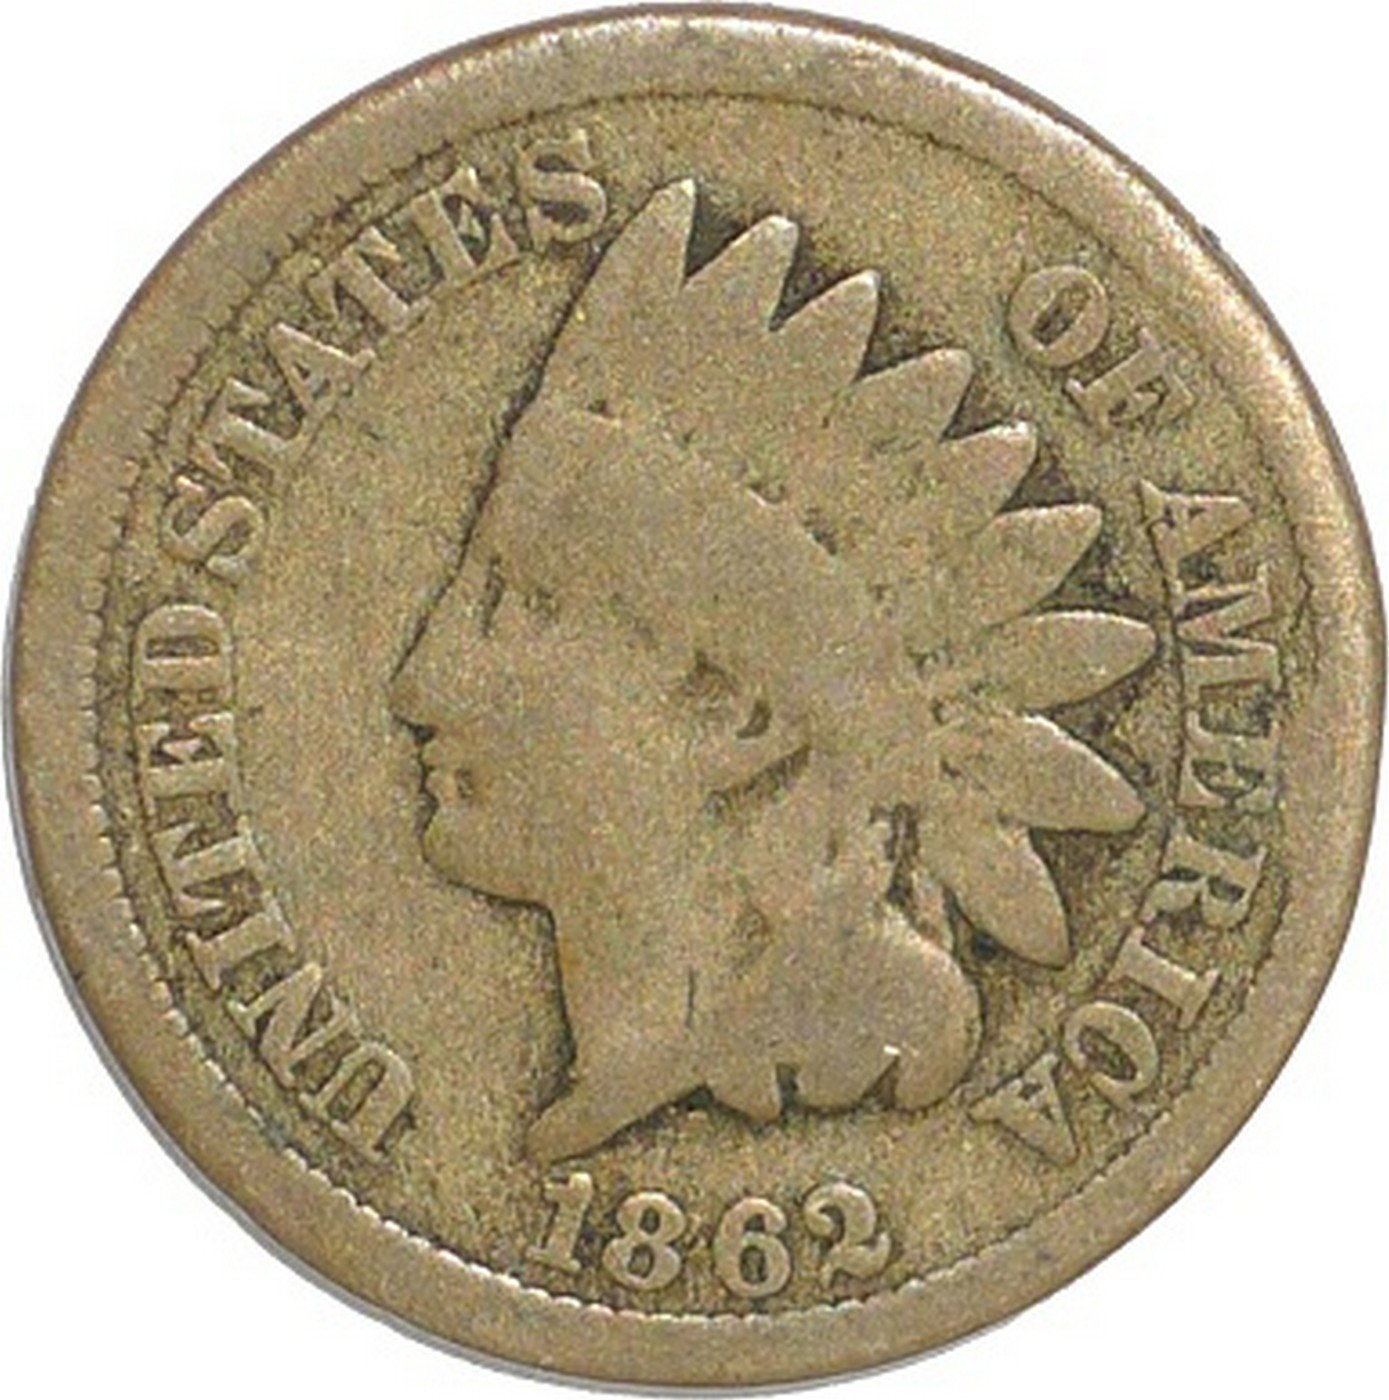 1862 Obverse of CUD-015 - Indian Head Cent - Photo by David Poliquin